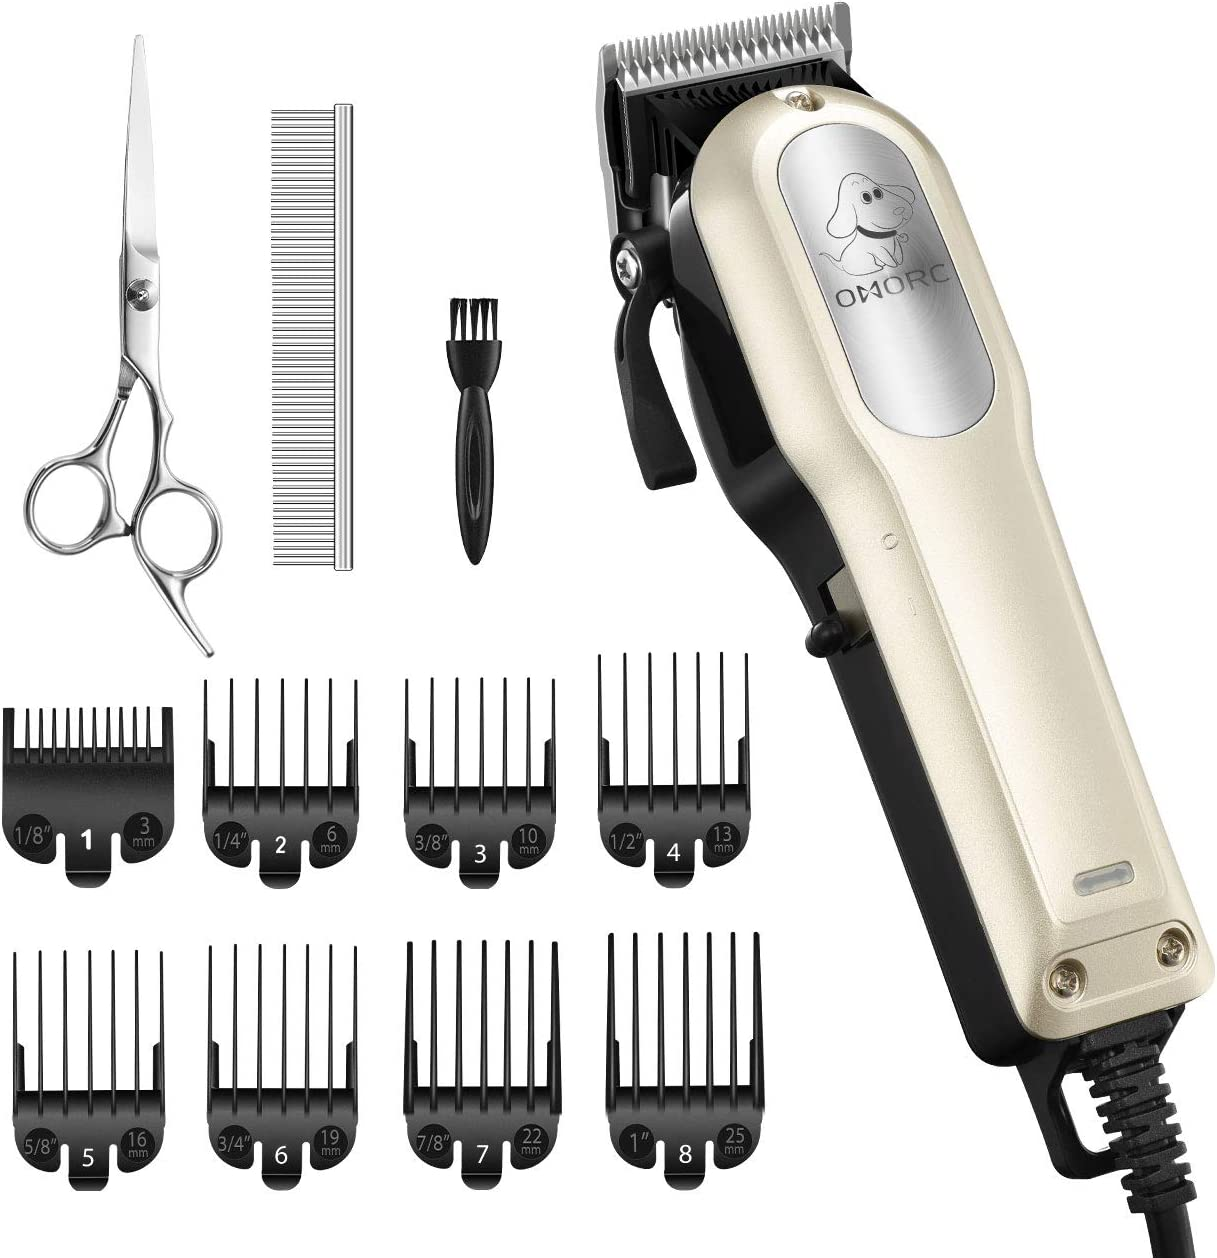 OMORC Dog Clippers with 12V High Power for Thick Coats, Professional Heavy Duty Dog Grooming Kit, Plug-in & Quiet Pet Clippers with 8 Comb Guides, 1 Scissor, 1 Comb, 1 Cleaning Brush